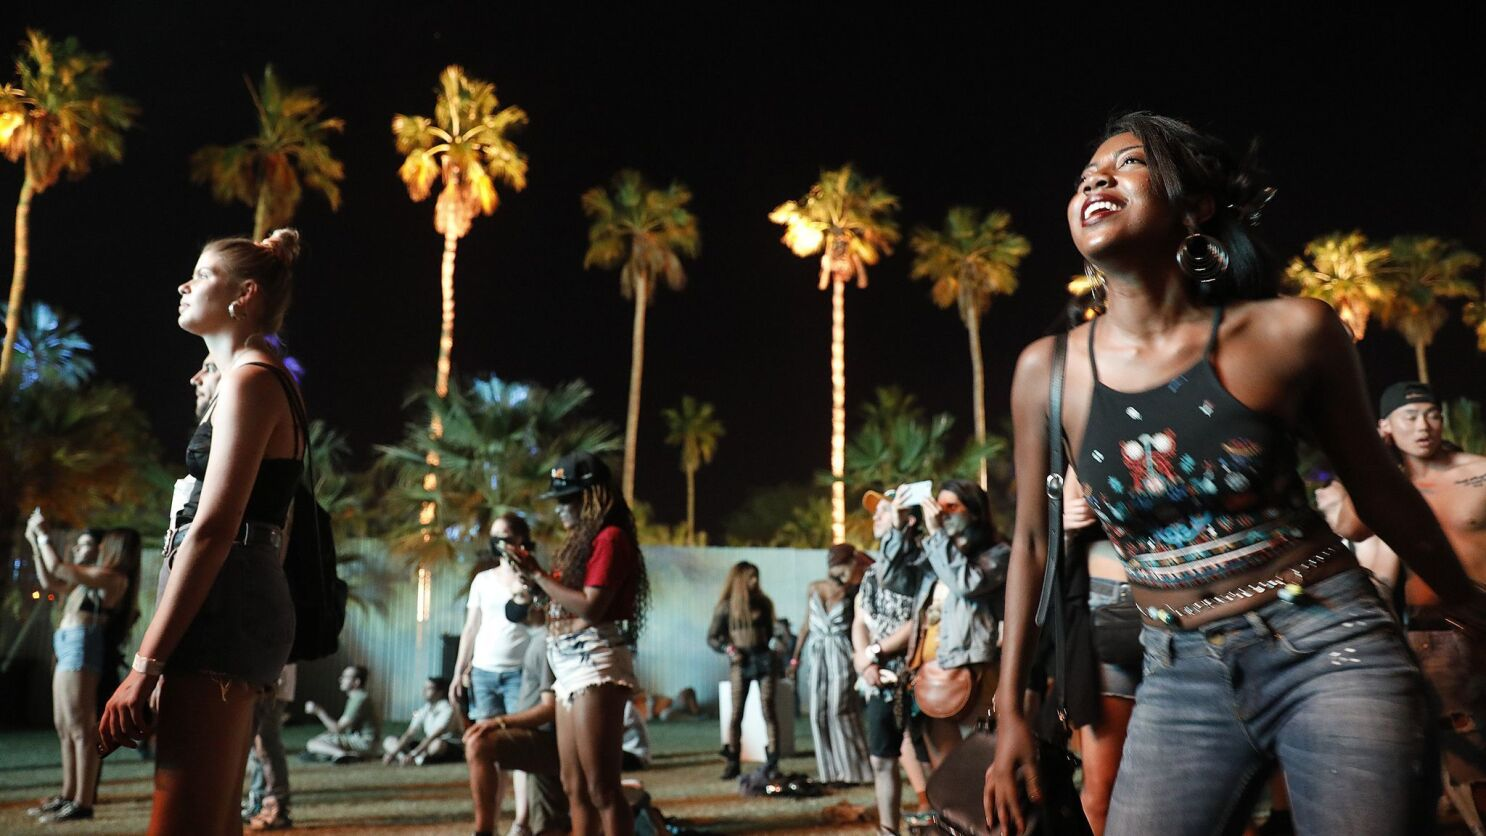 cad467366c Your ultimate guide to Coachella 2019 - The San Diego Union-Tribune